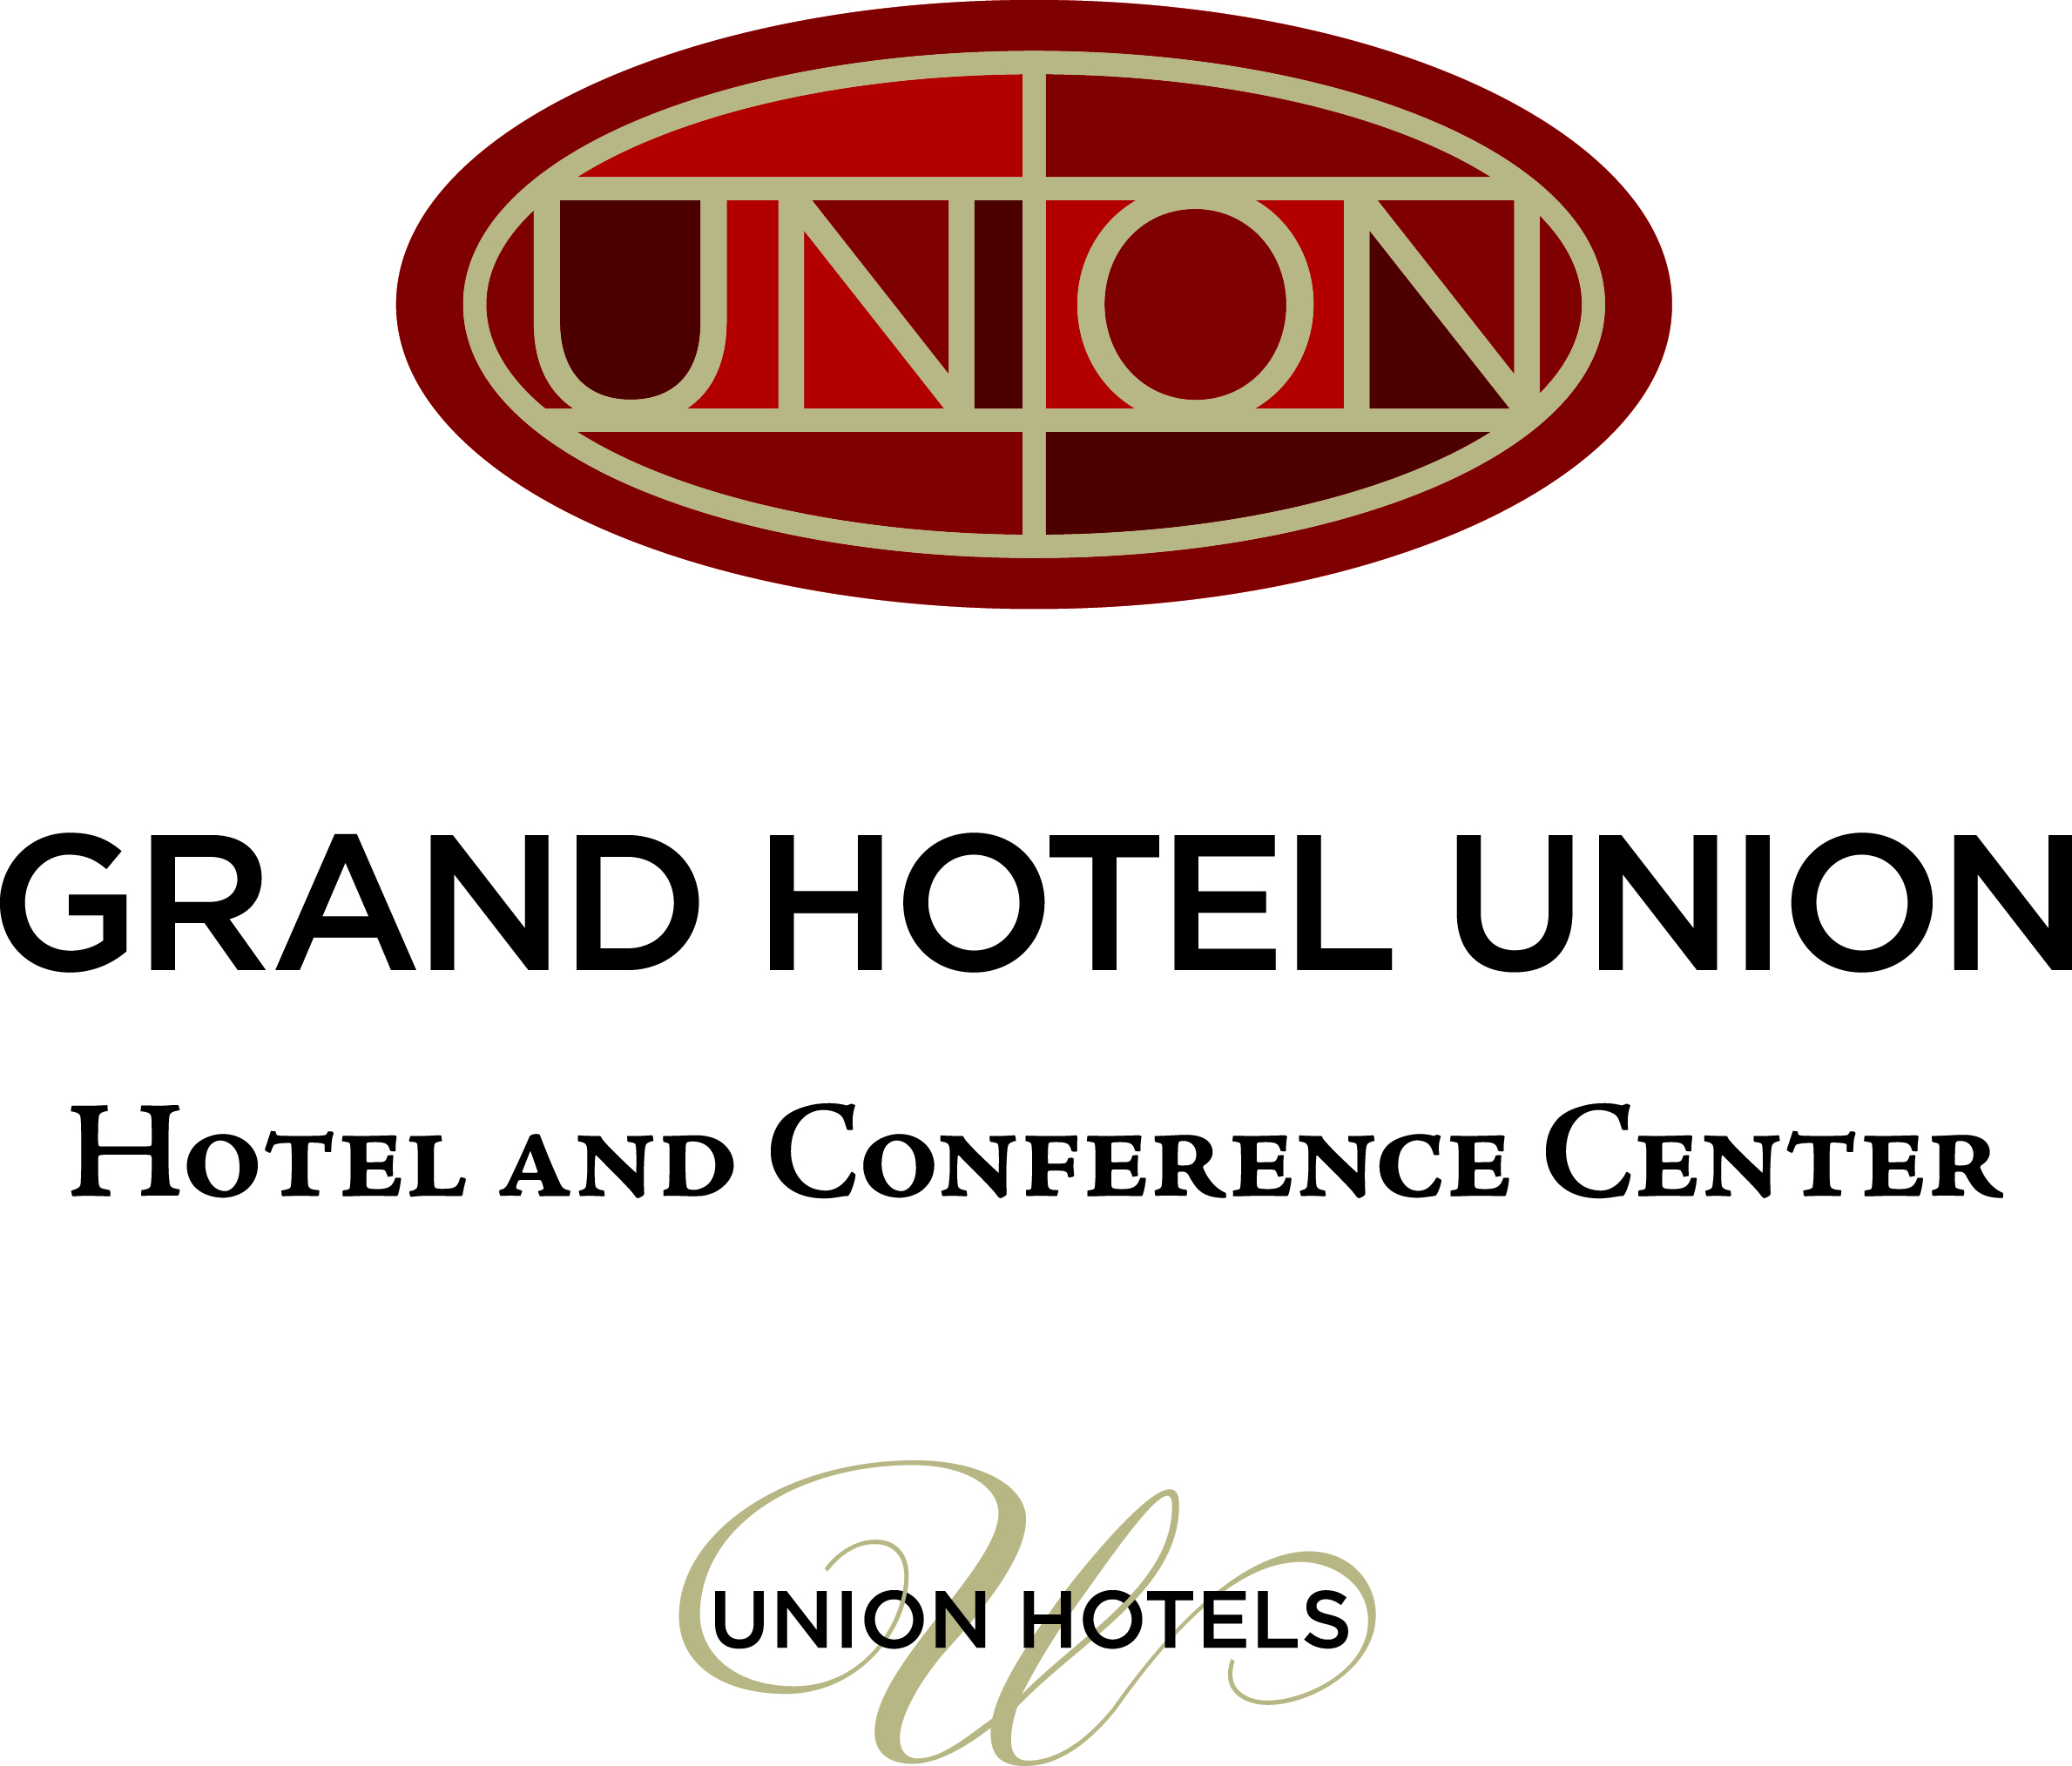 GRAND HOTEL UNION, UNION HOTELS Image